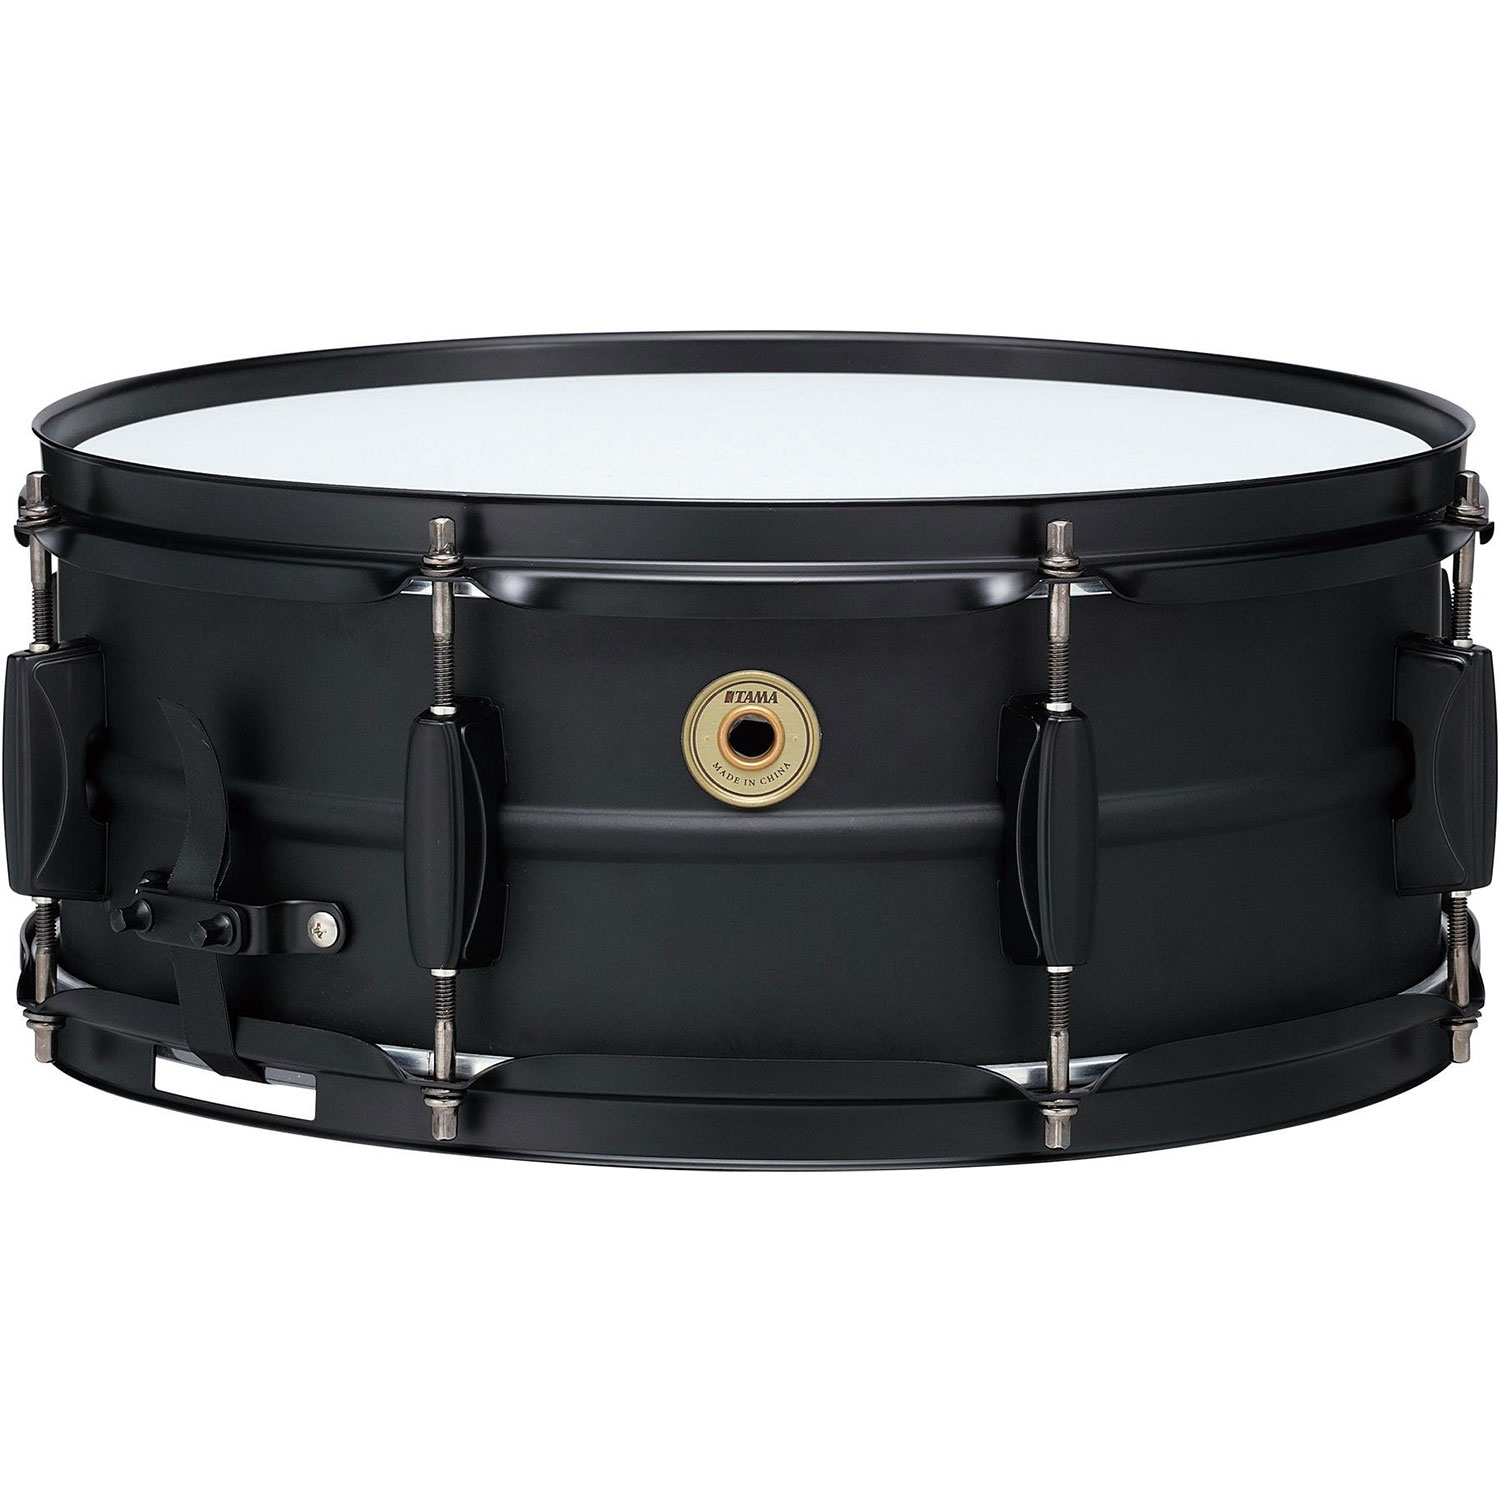 "Tama 5.5"" x 14"" Metalworks Steel Snare Drum in Matte Black with Matching Hardware"